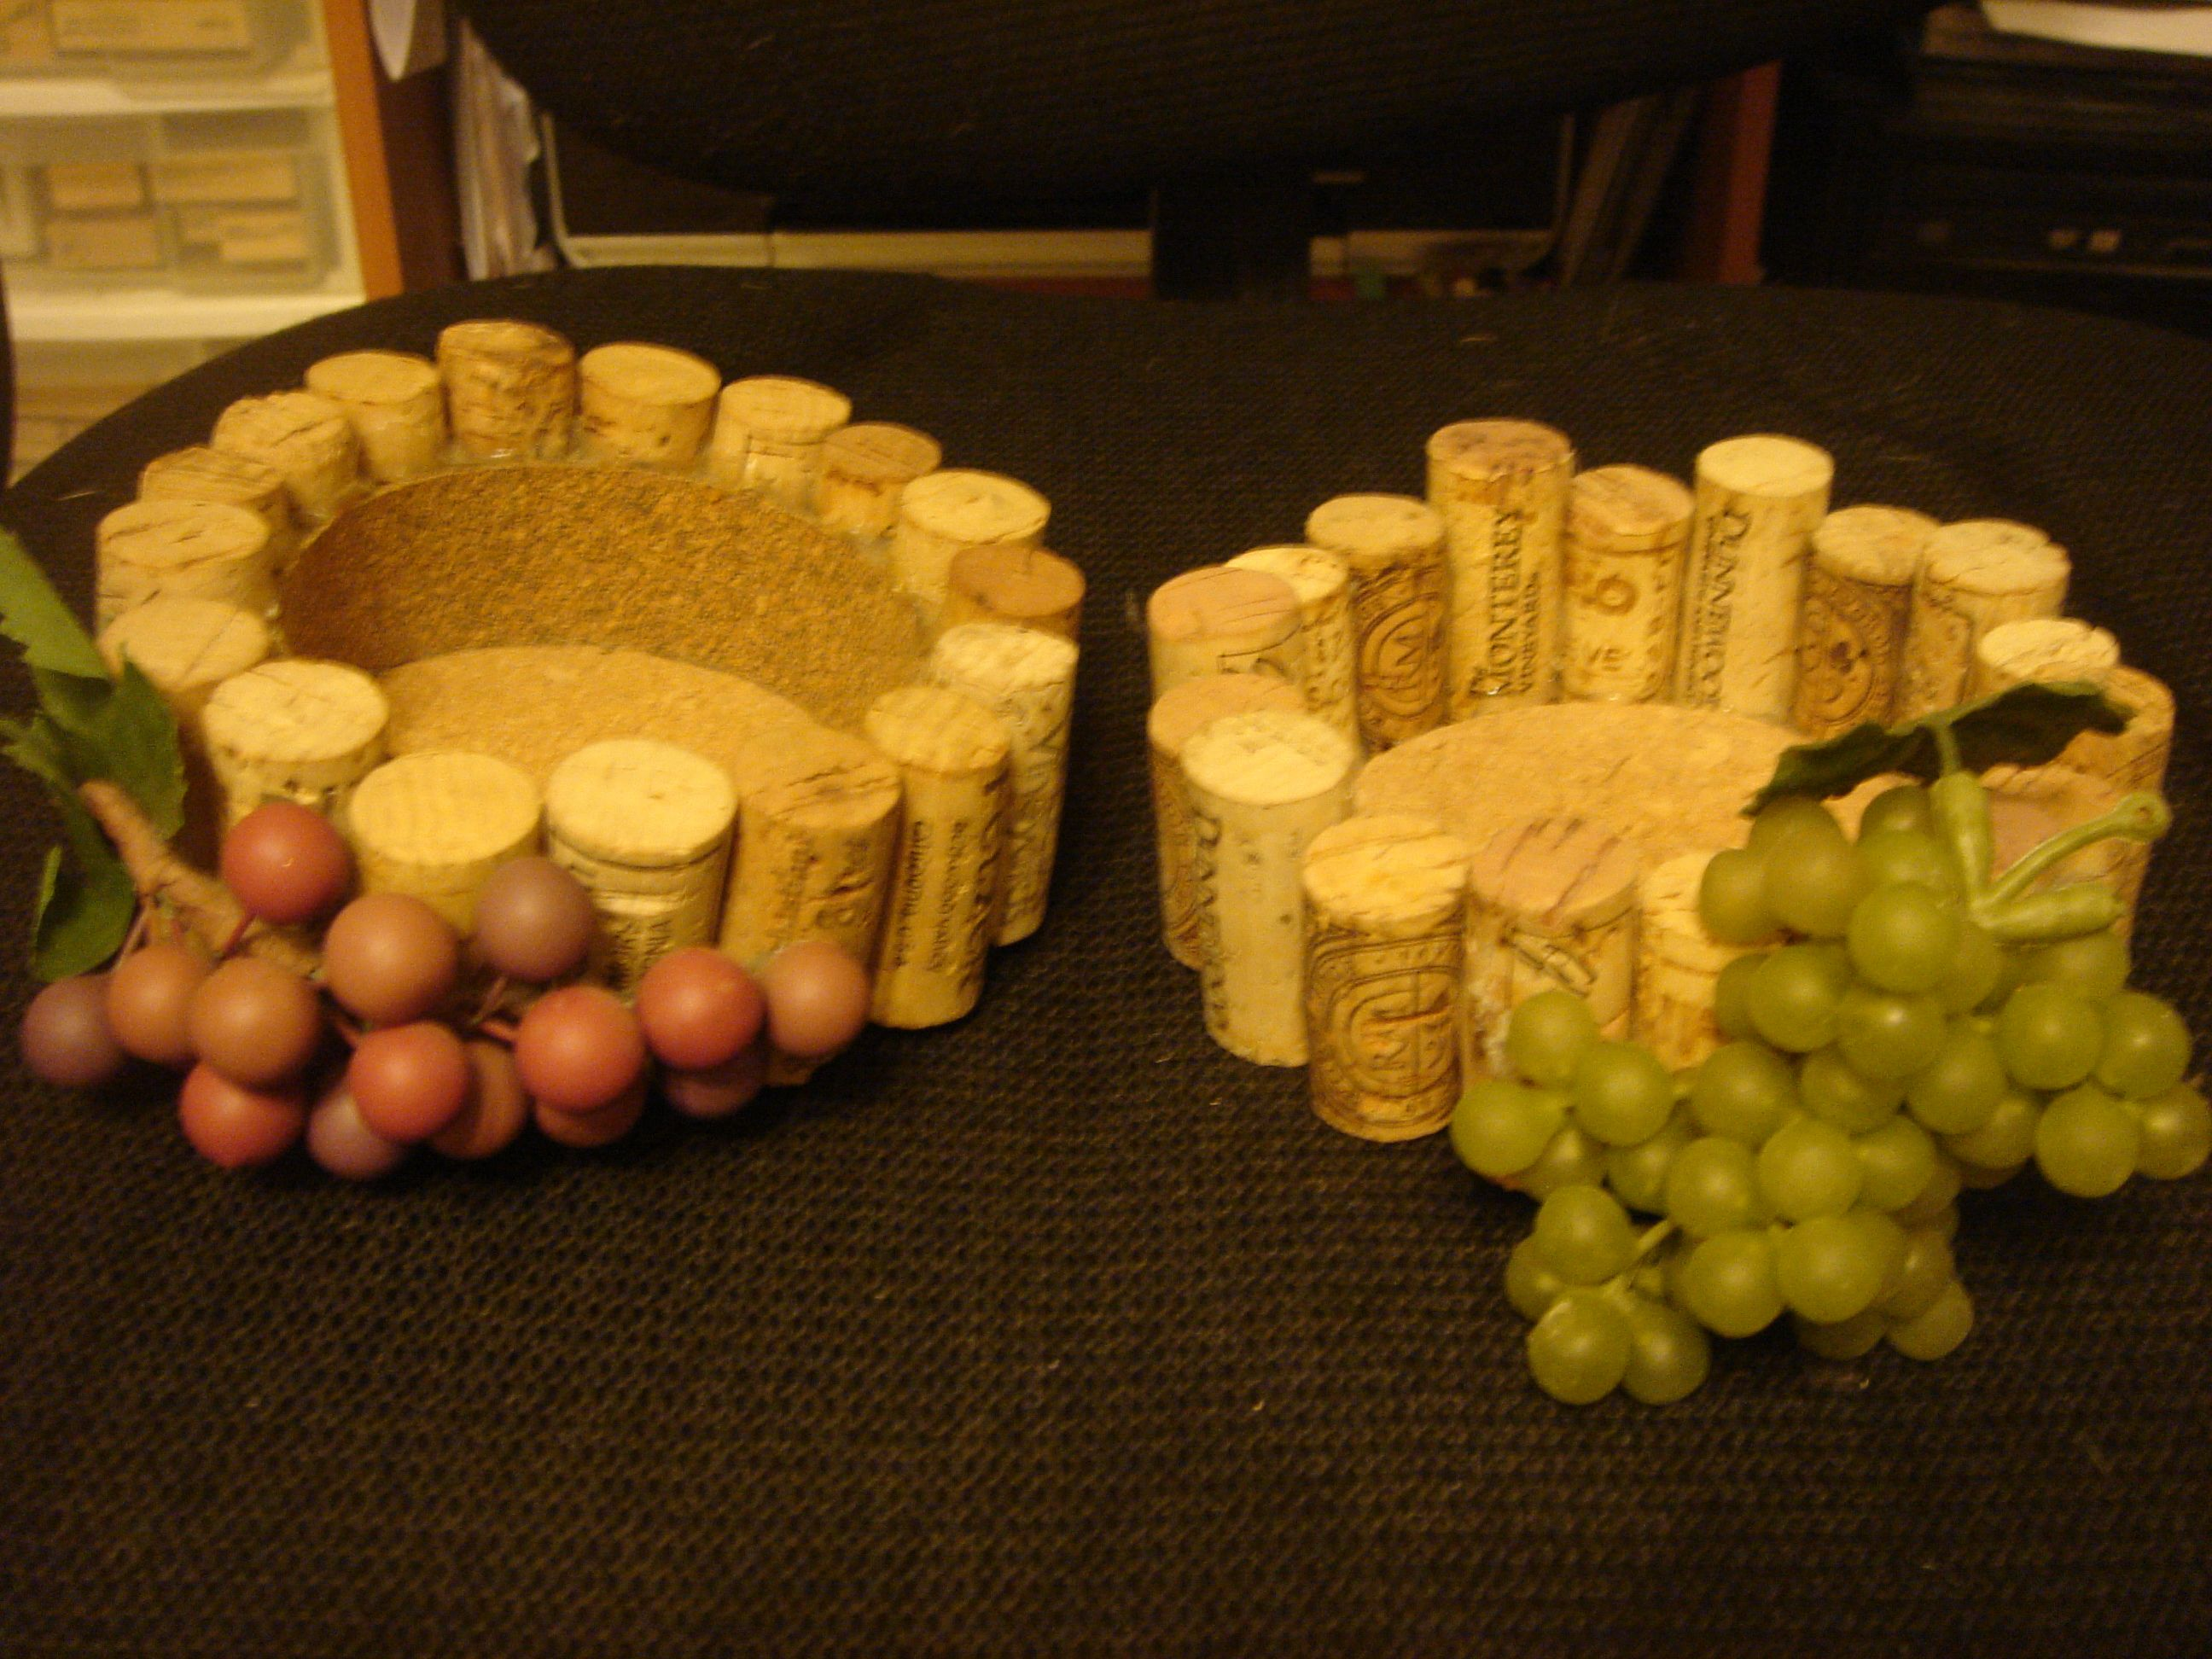 wine cork bottle holders. Order your #Corks from #WineKnow on #Etsy!